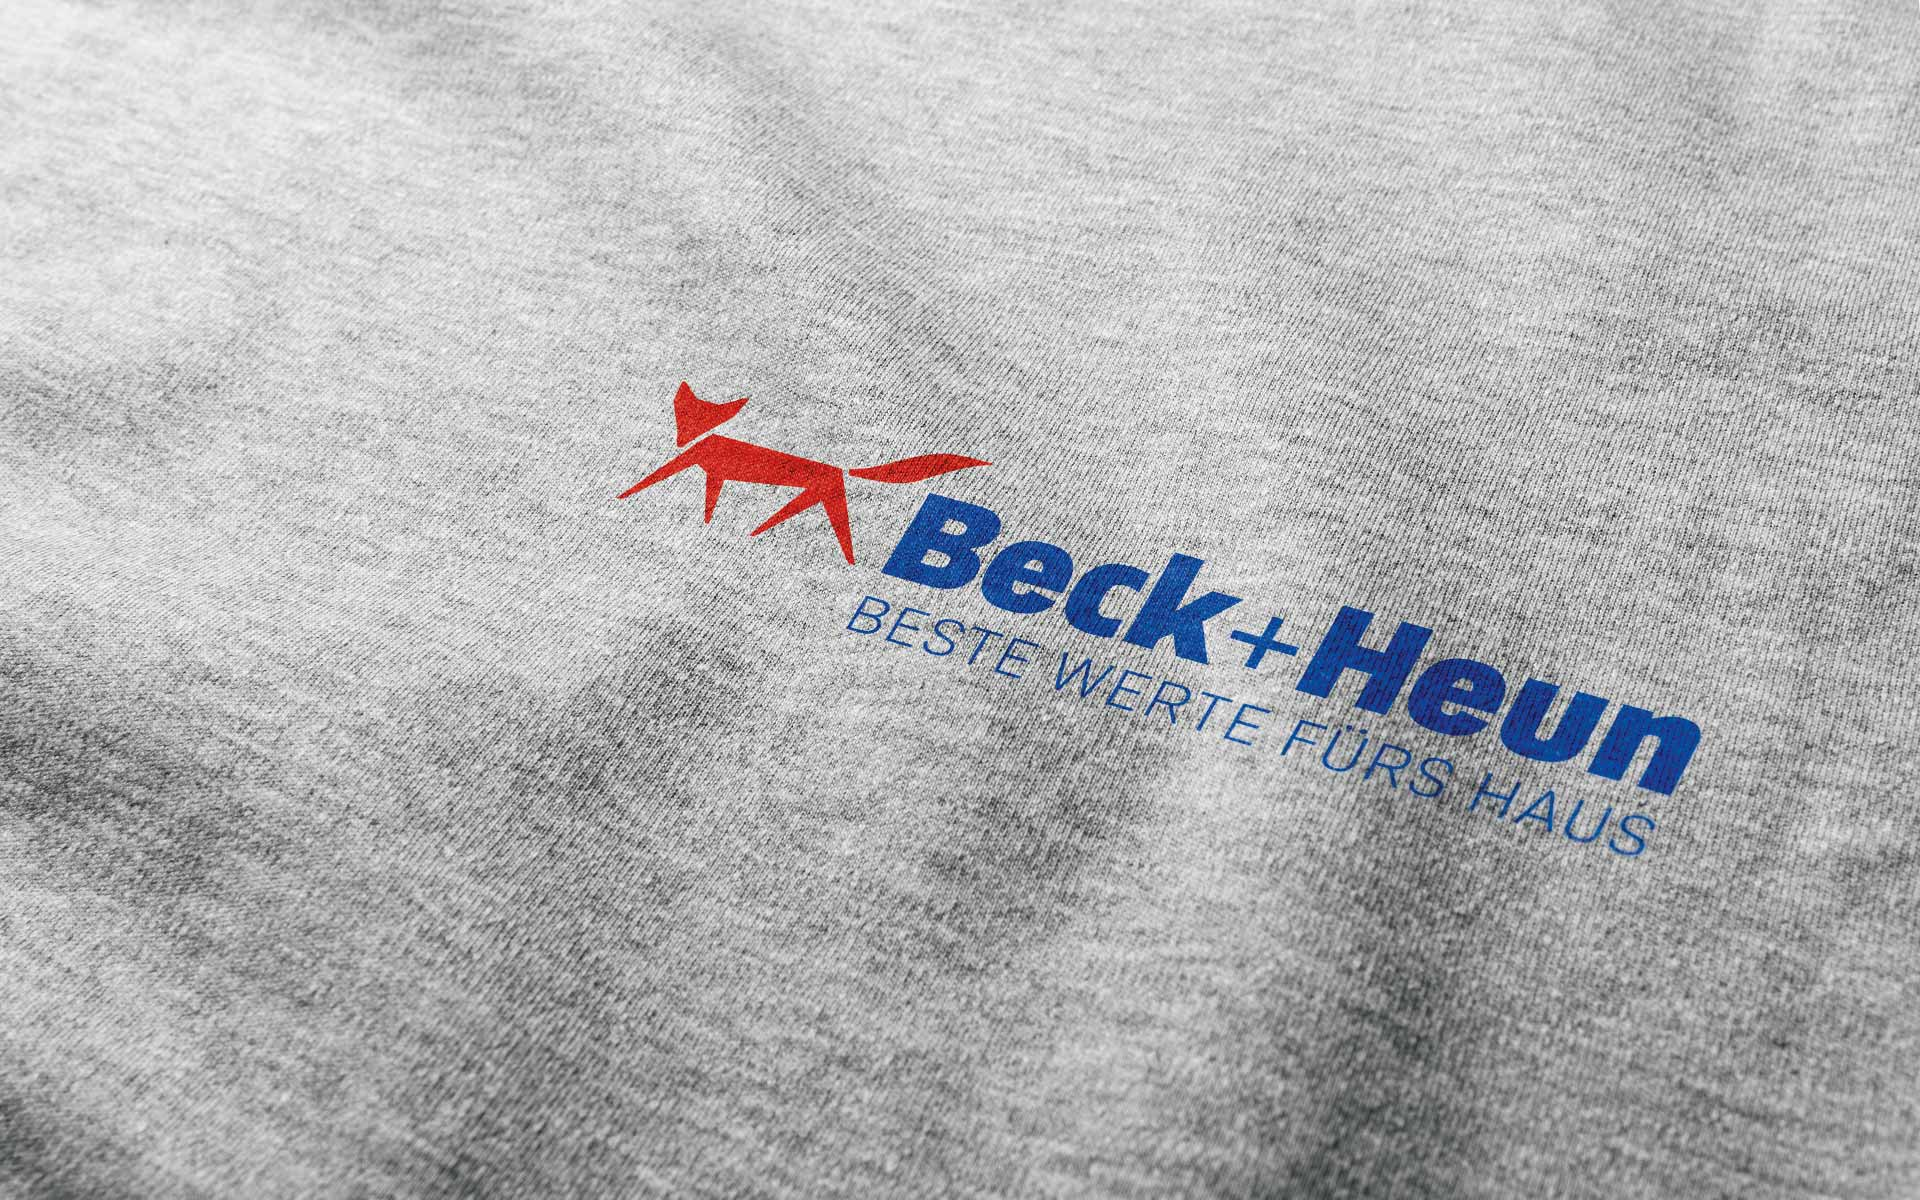 Beck+Heun Corporate Design, Markenkommunikation, Corporate Fashion